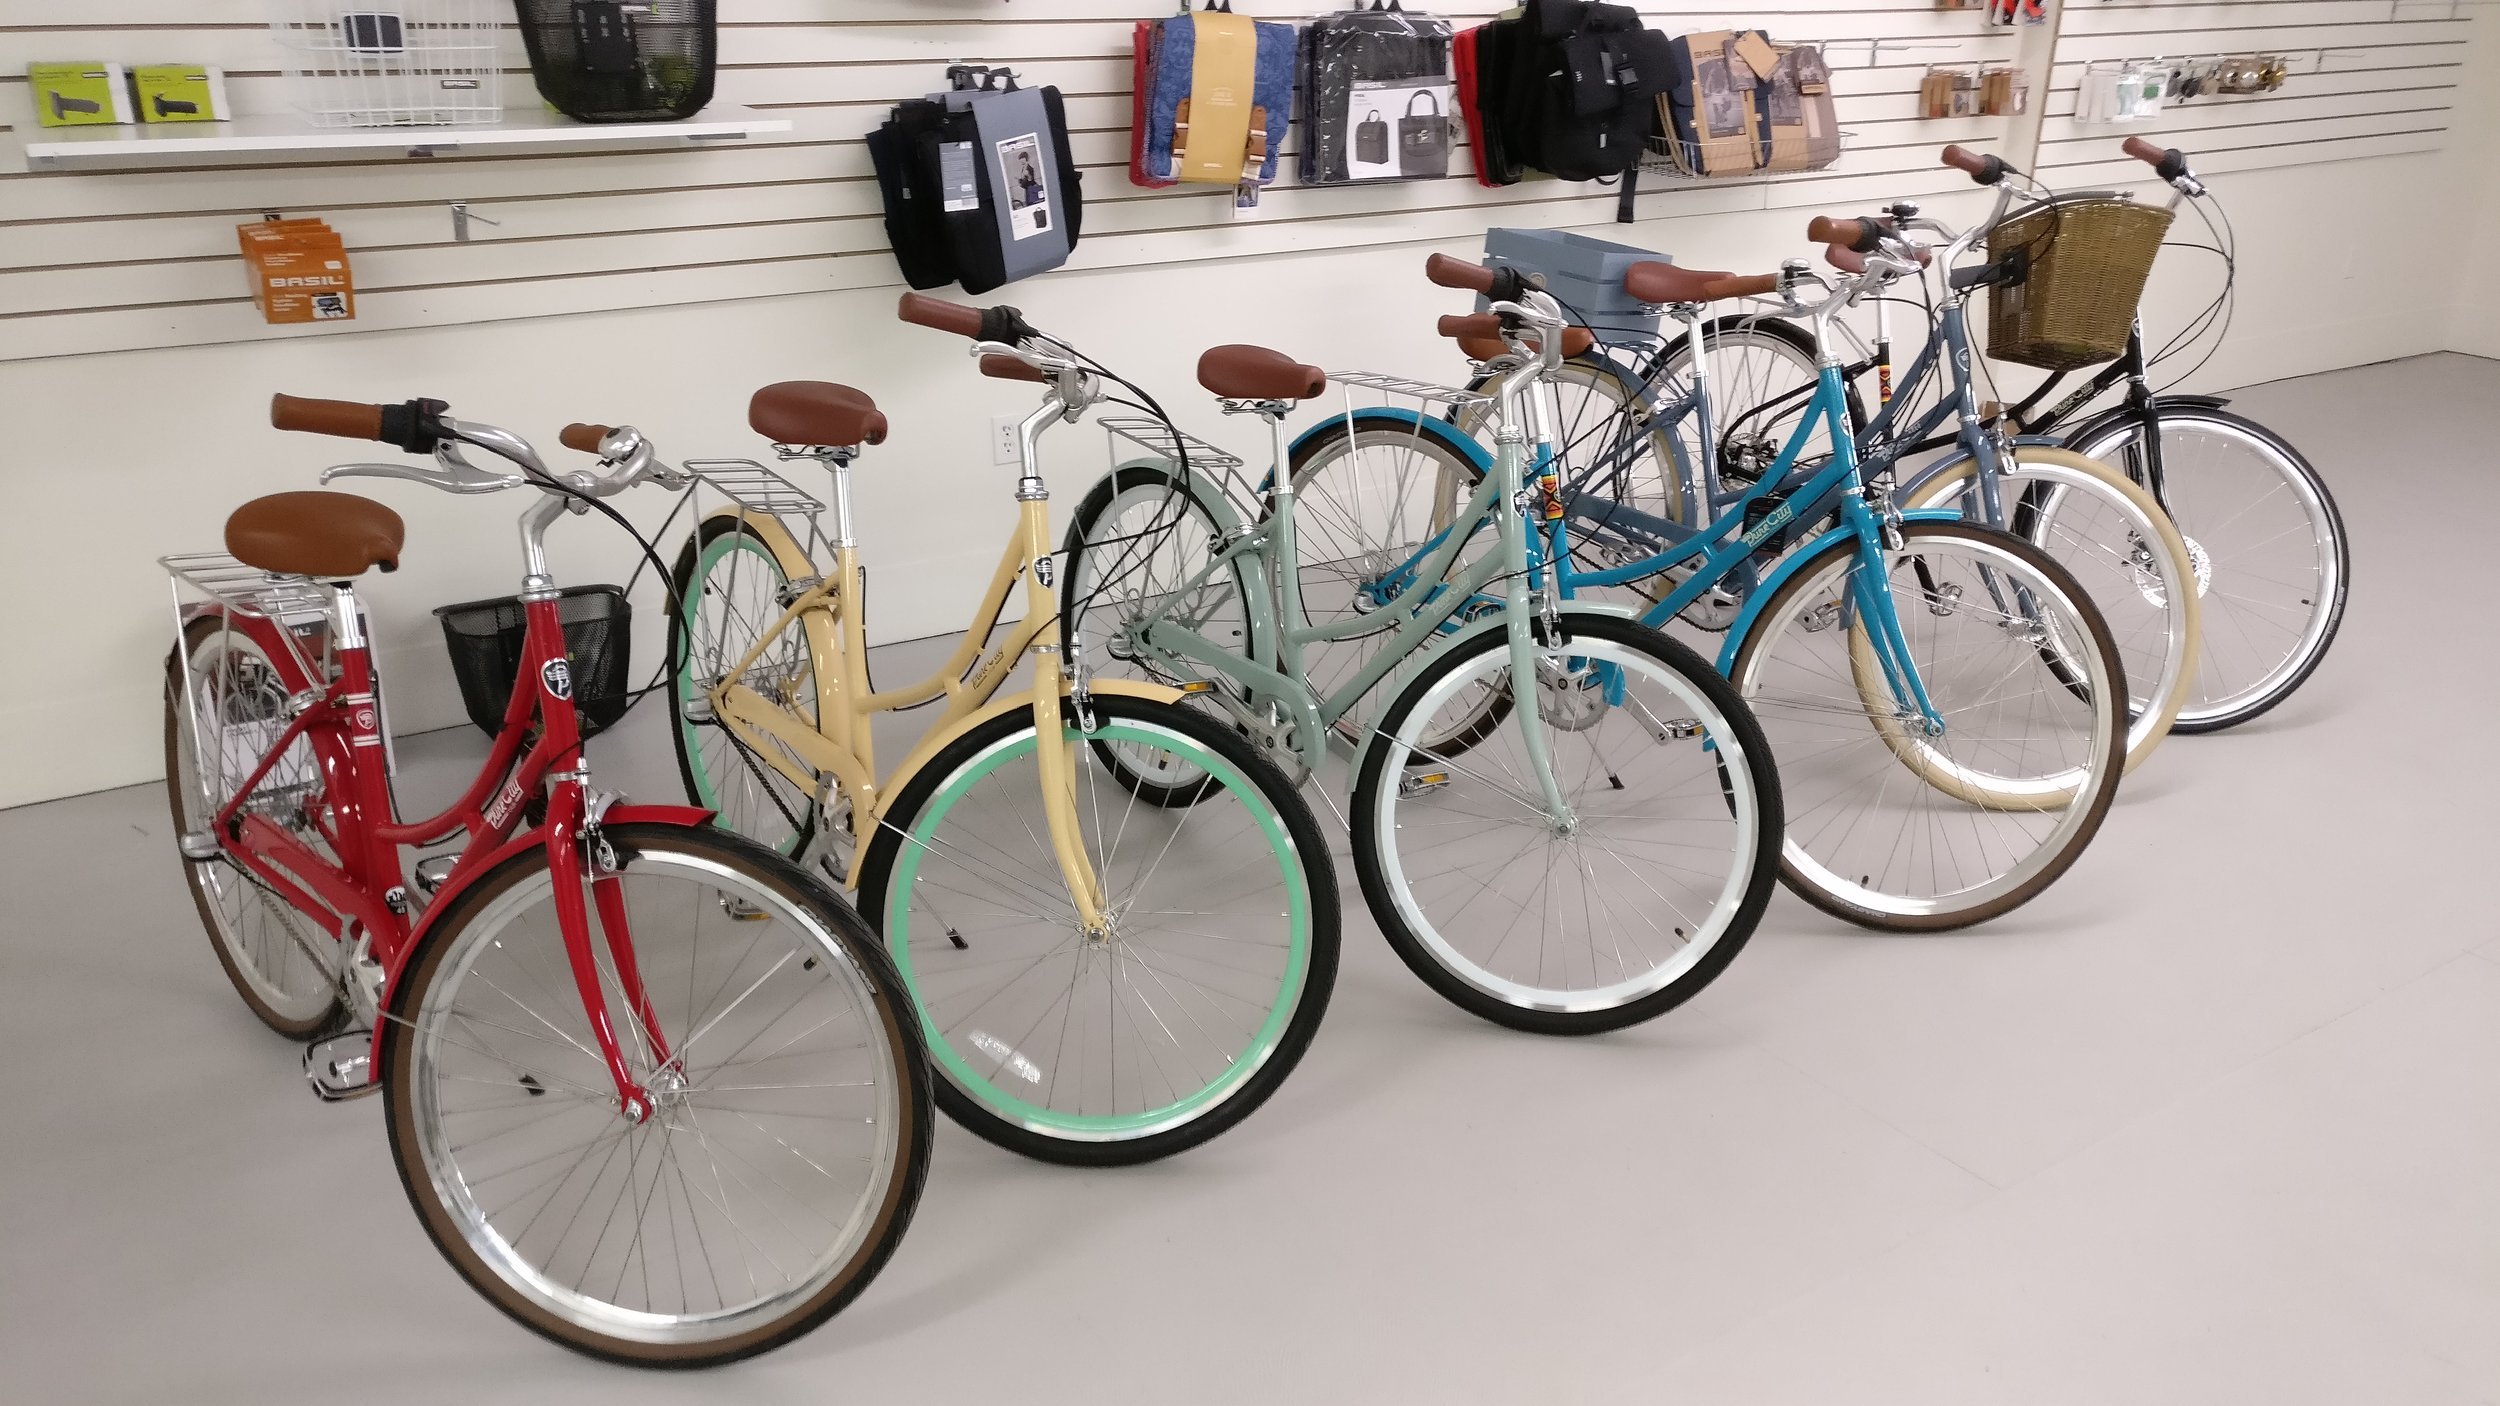 The Pure City Cycles lineup looks amazing, and rides like you're floating on a cloud. Comfortable upright posture, three speed gear hub (perfect for the city), fenders, a rear rack, a bell, and includes a one year service package. This may be the perfect bike for #LdnOnt.